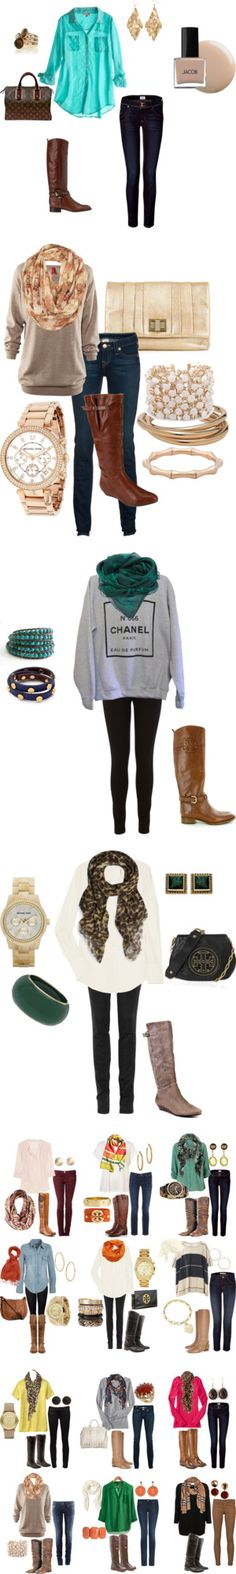 These are really cute casual outfits...I would judge me if I wore them though #coastielove